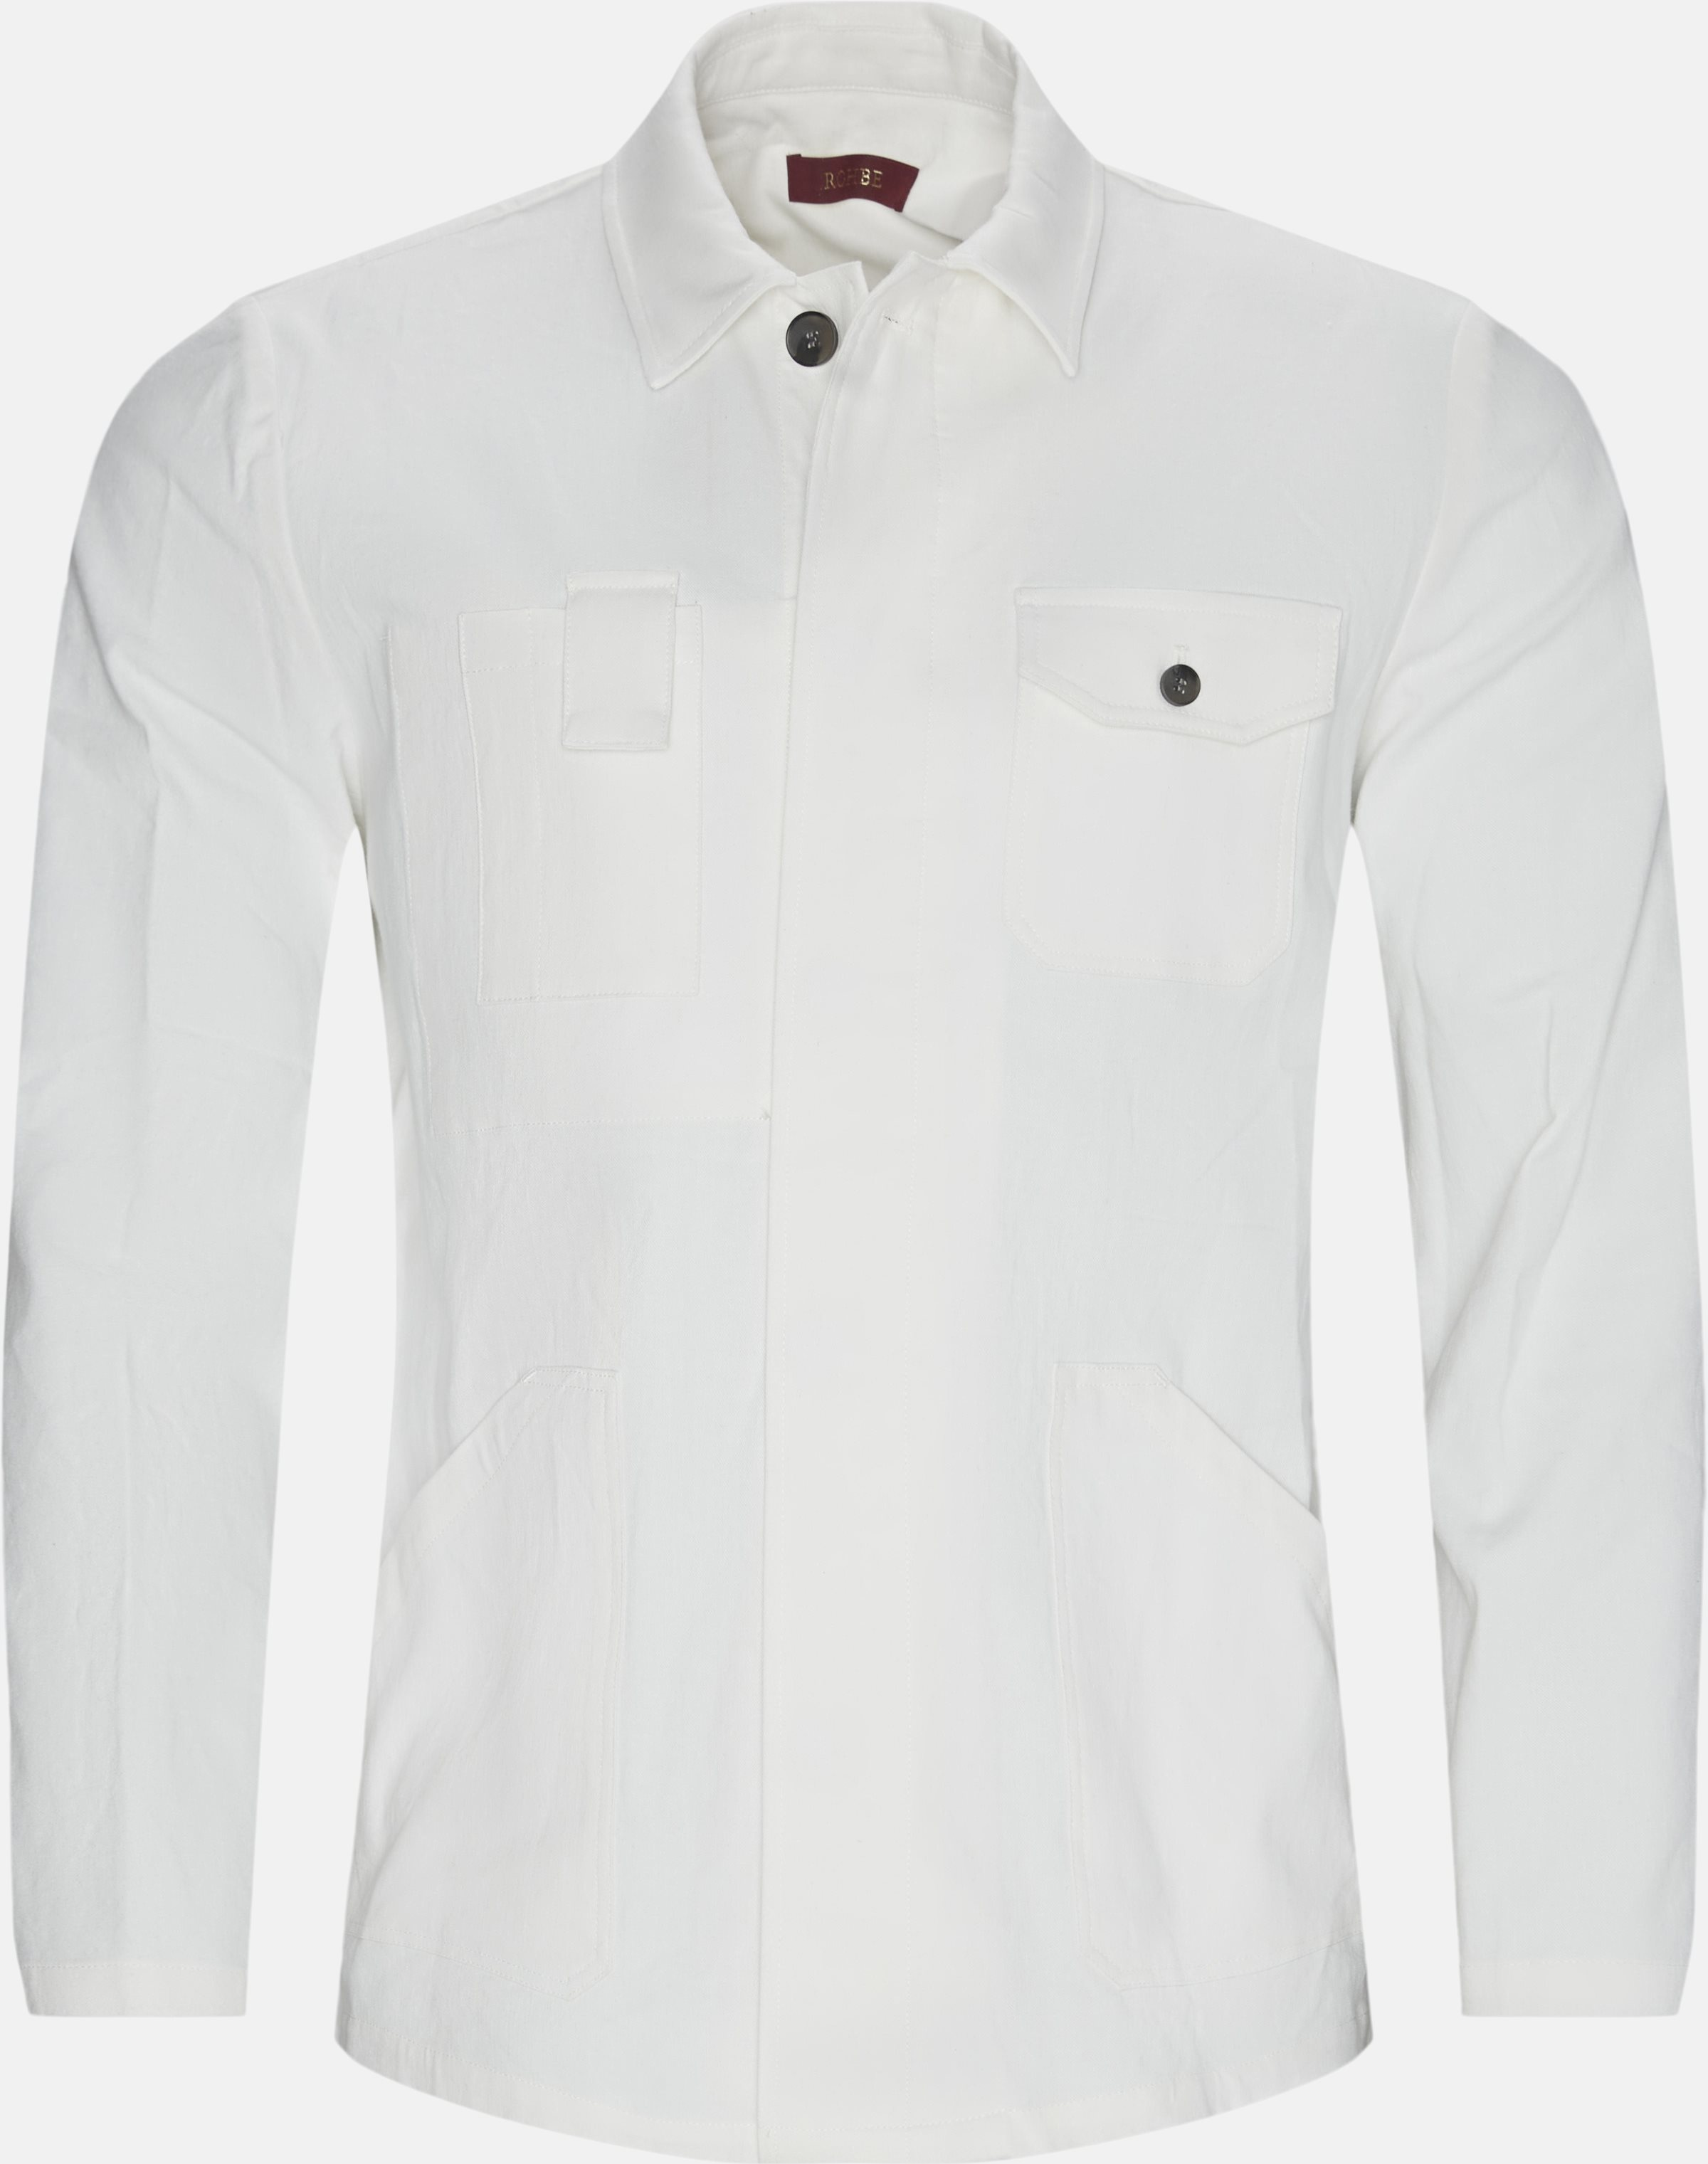 Overshirts - Regular - White